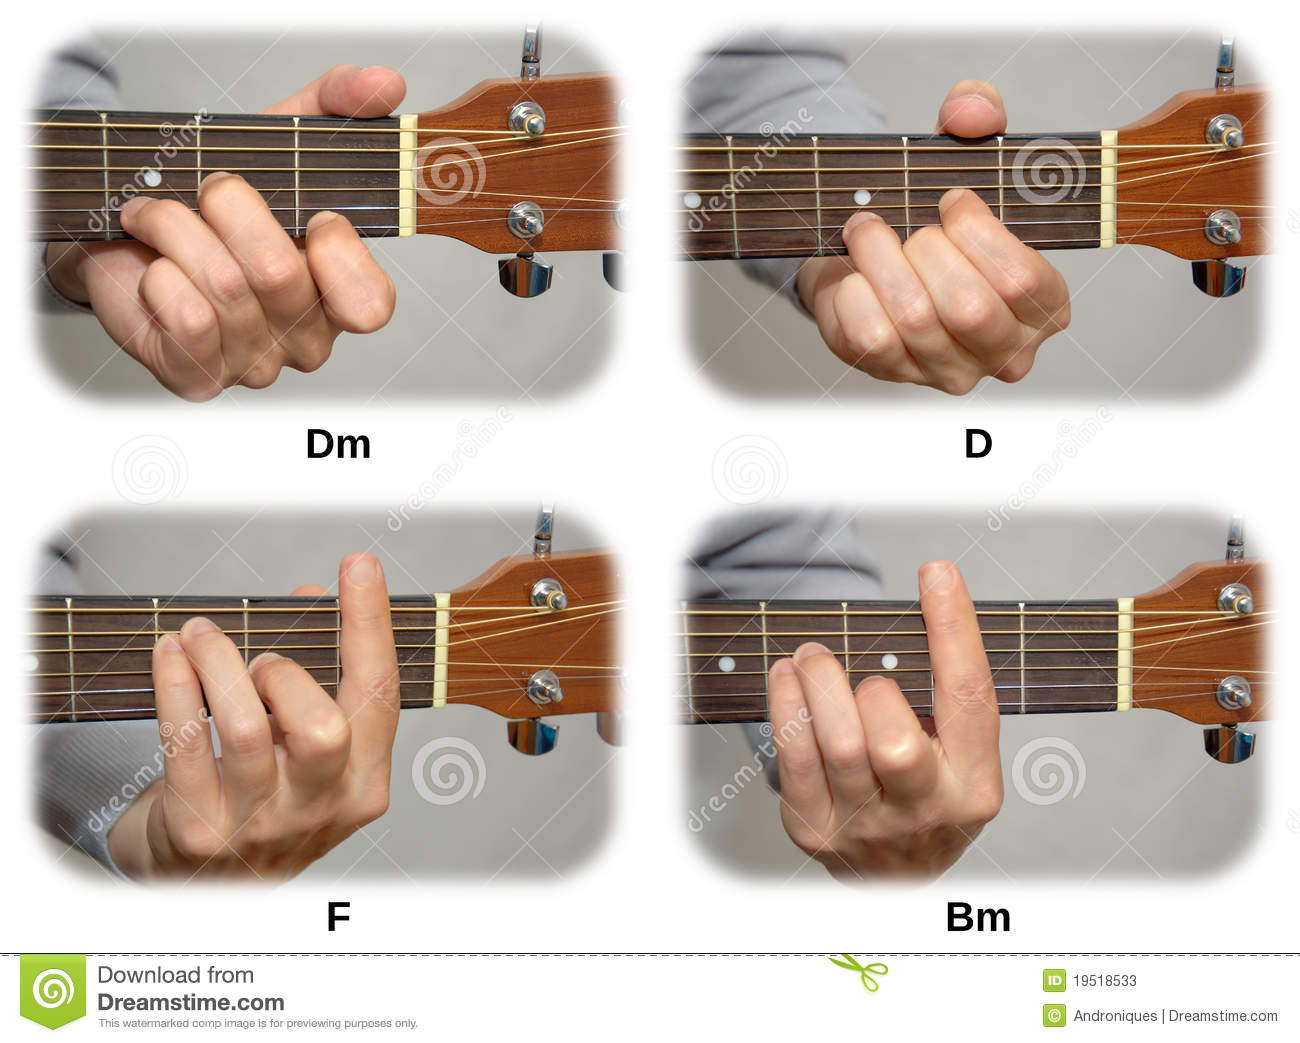 Guitarist Hand Playing Guitar Chords: Dm, D, F, Bm Stock Photos - Image: 19518533